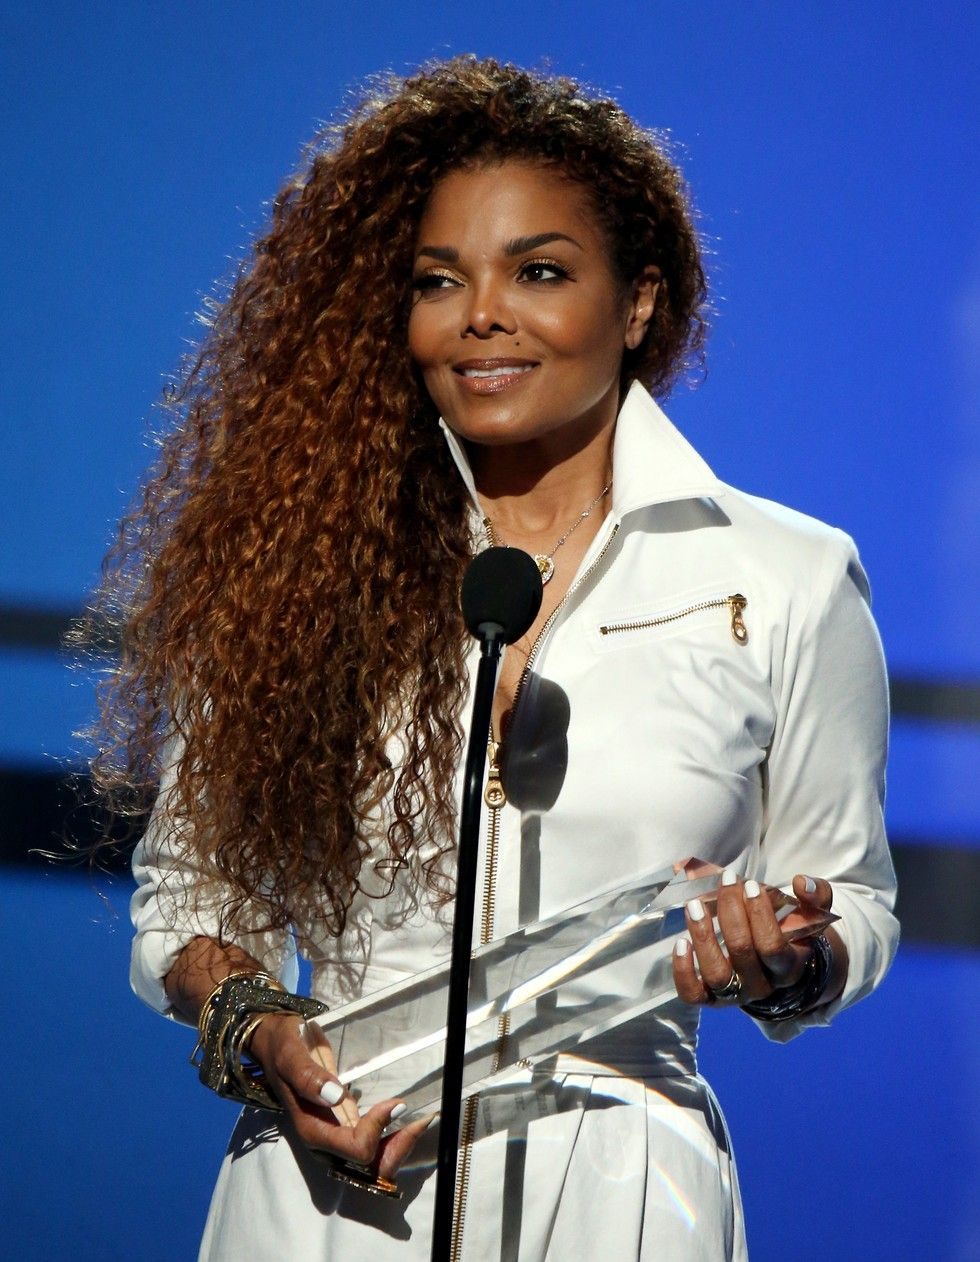 Janet Jackson Rocks Long Curly Hair At 2017 Bet Awards